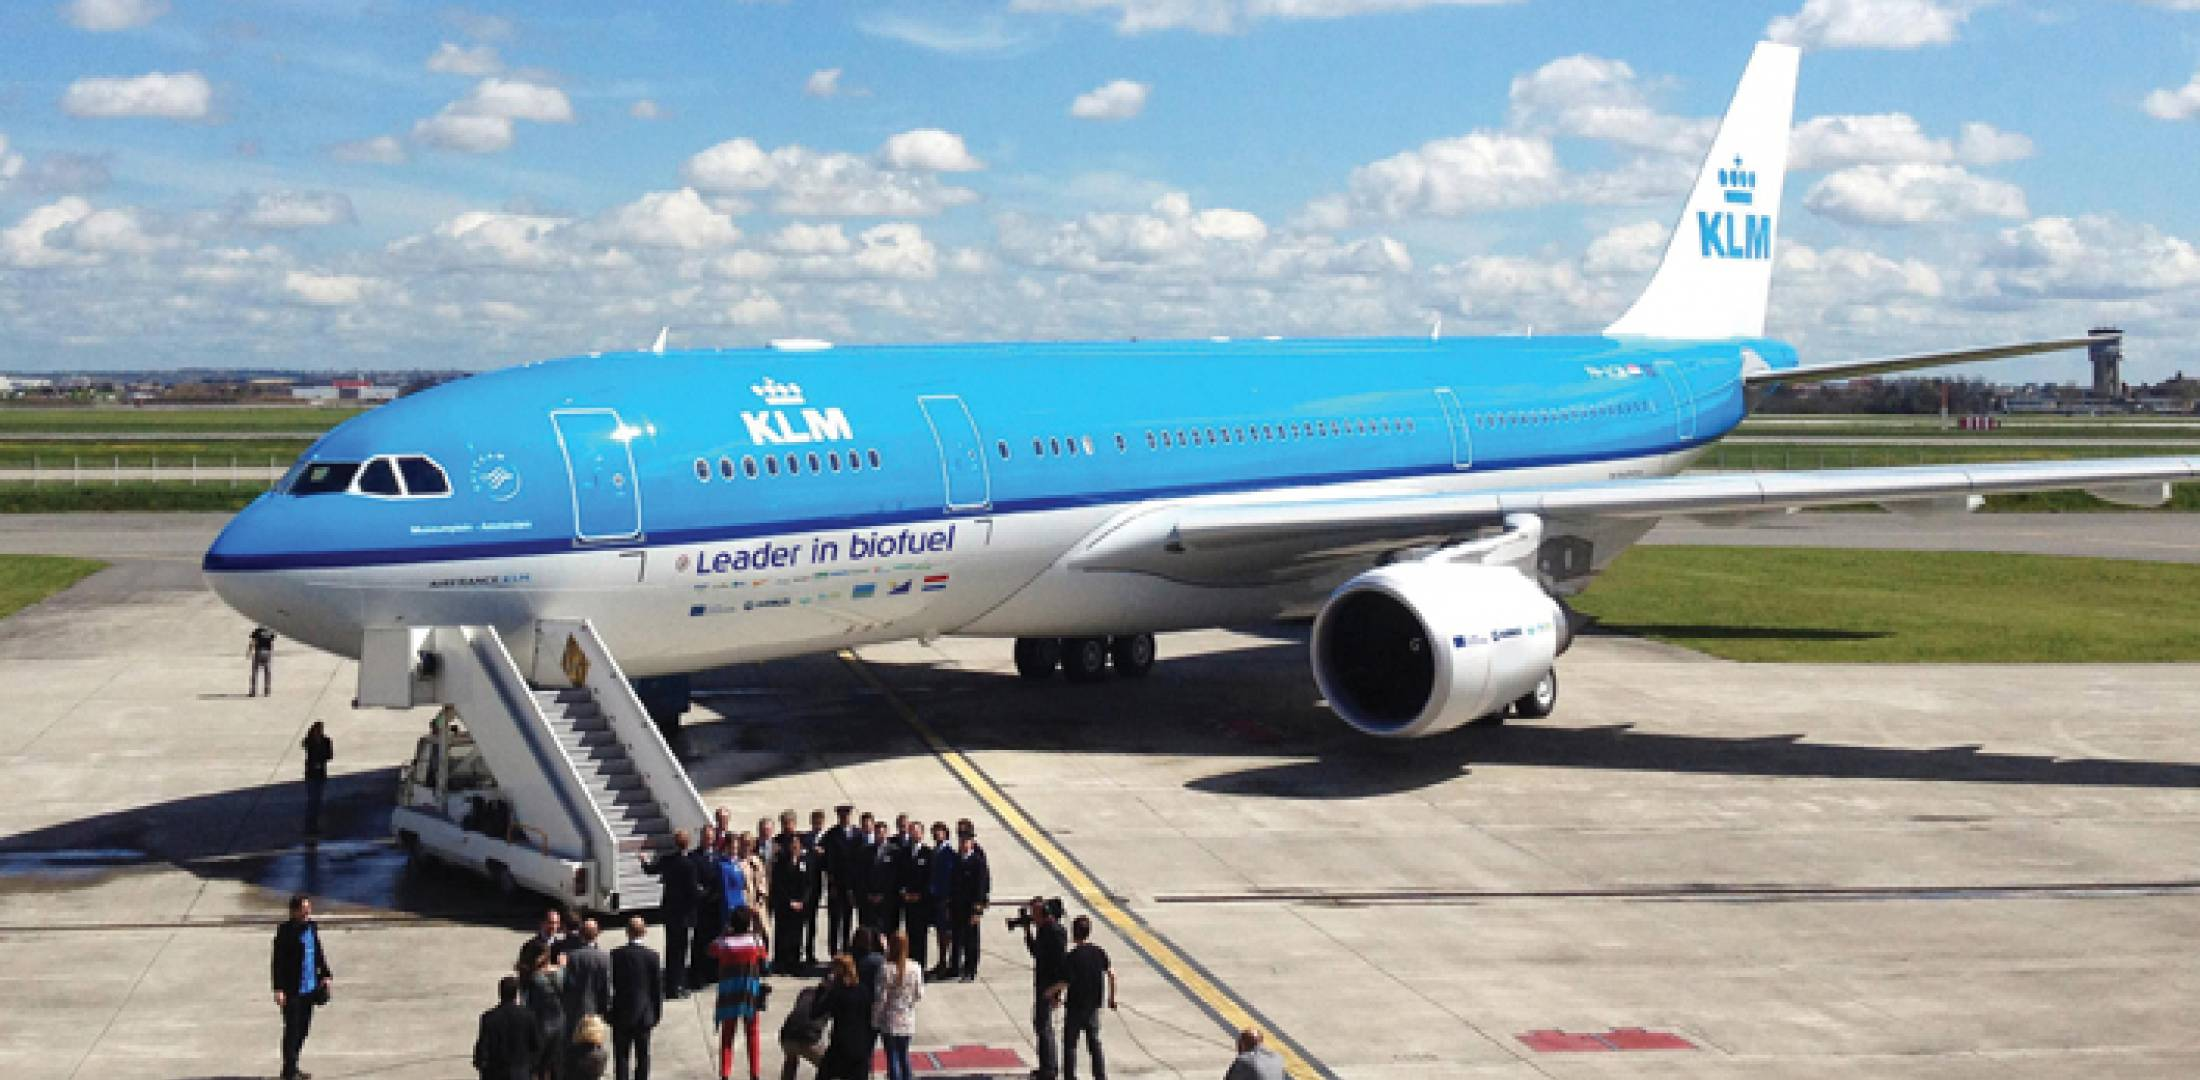 In May, an A330-200 operated by KLM Royal Dutch Airlines made a 10-hour flight from Amsterdam to Aruba with tanks filled with a 20-percent blend of fuel made from used cooking oil.